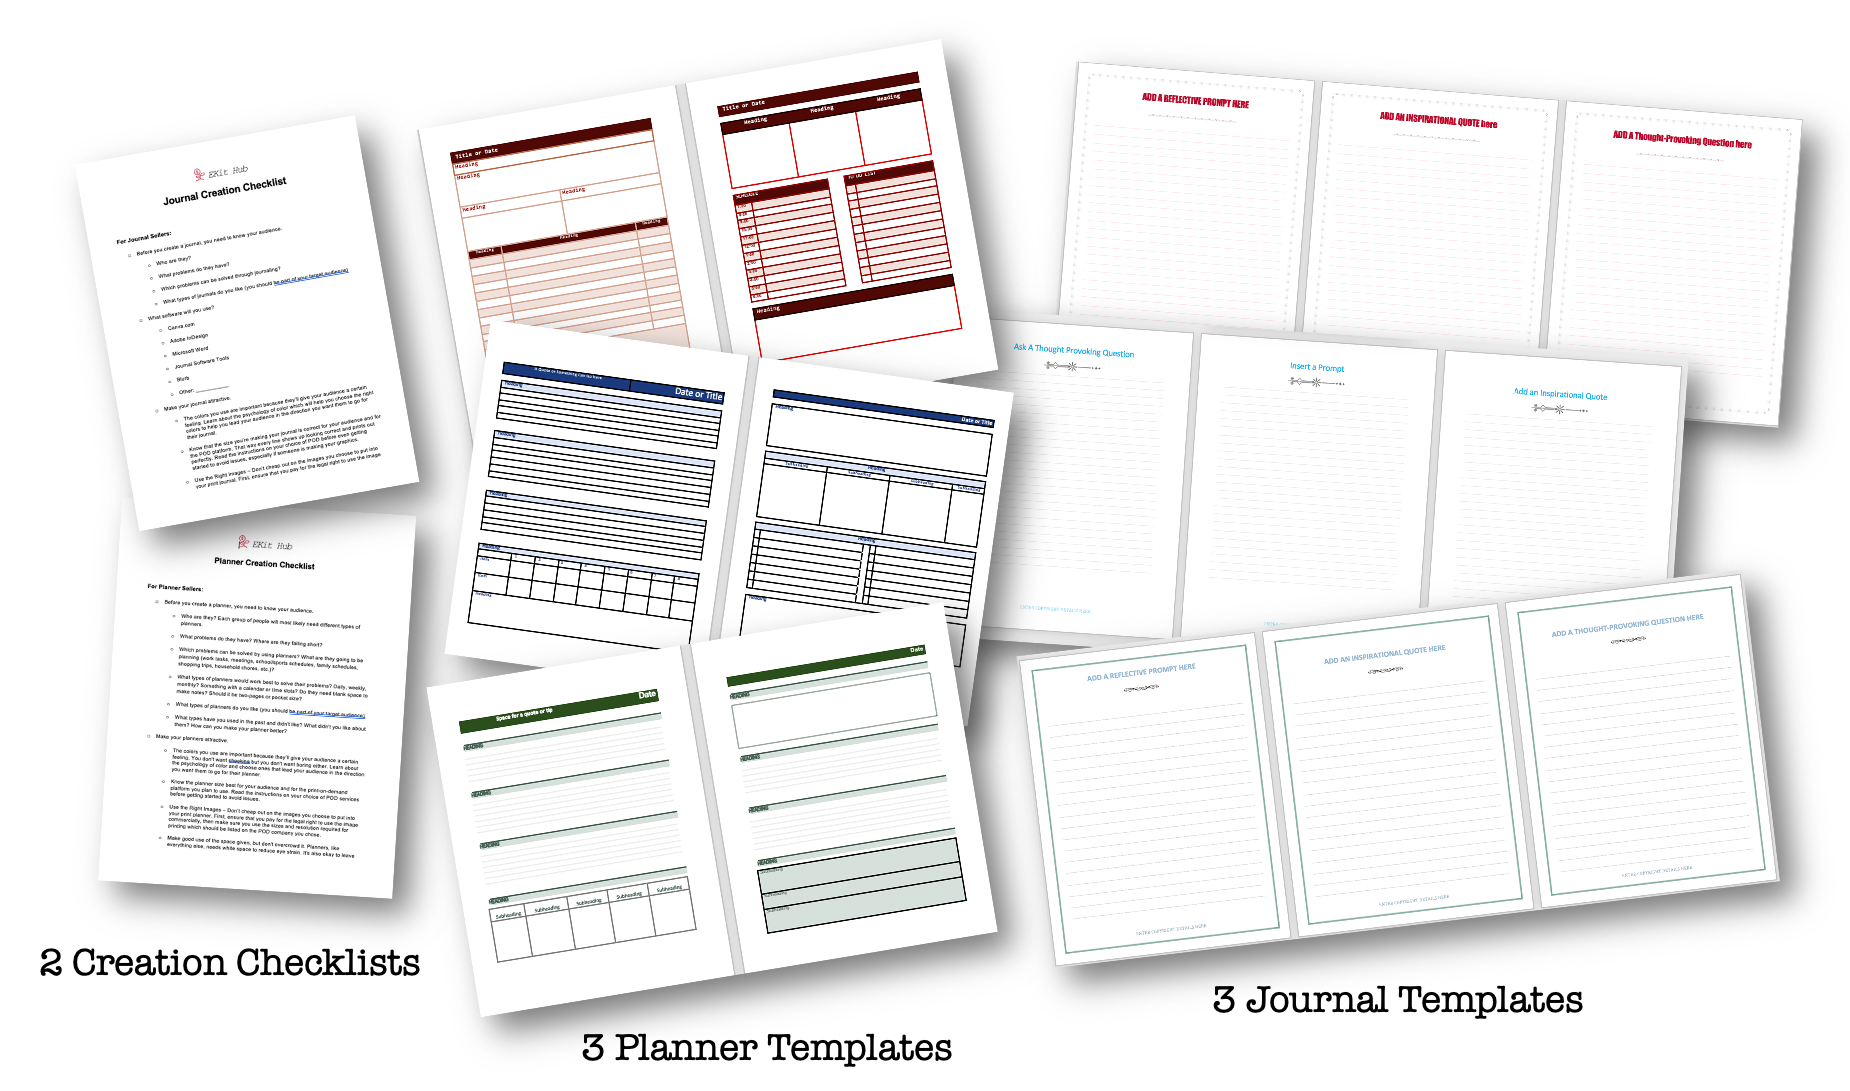 Journal and Planner Templates